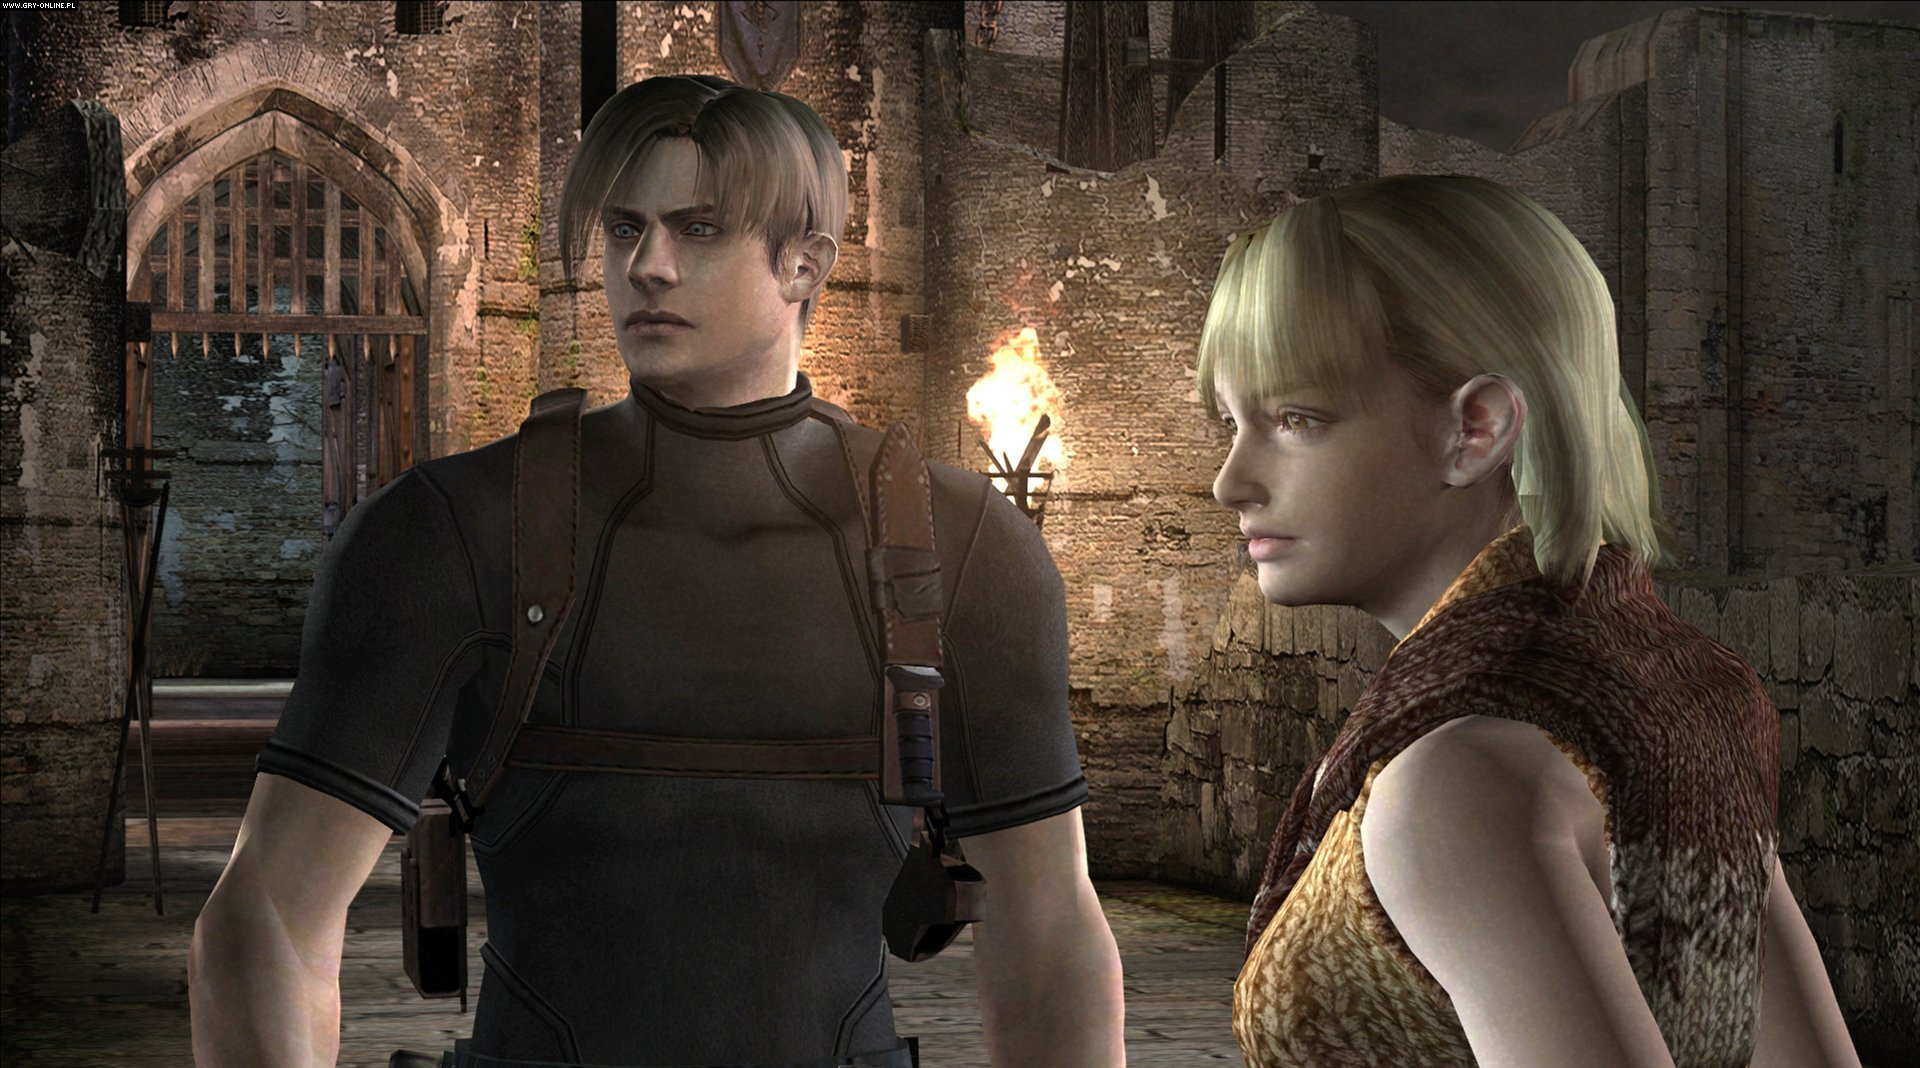 Resident Evil 4 HD PC, PS4, XONE, Switch Gry Screen 10/38, Capcom